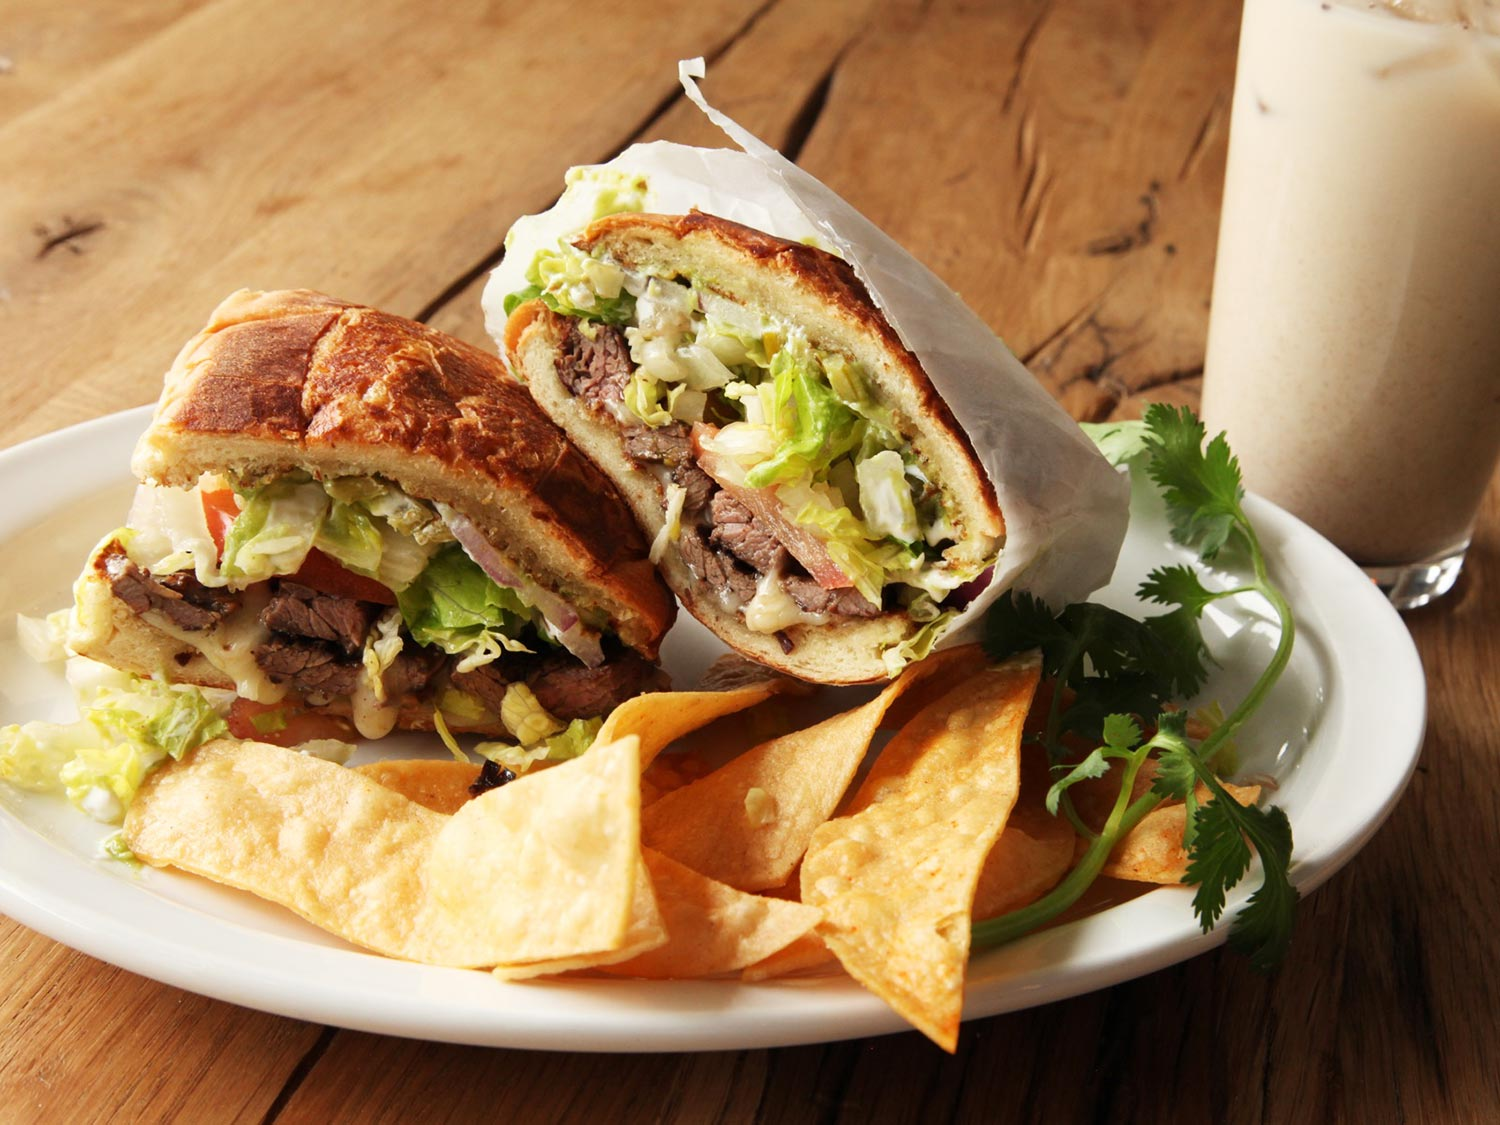 Tortas Boos Voni is a popular restaurant known for its authentic tortas.